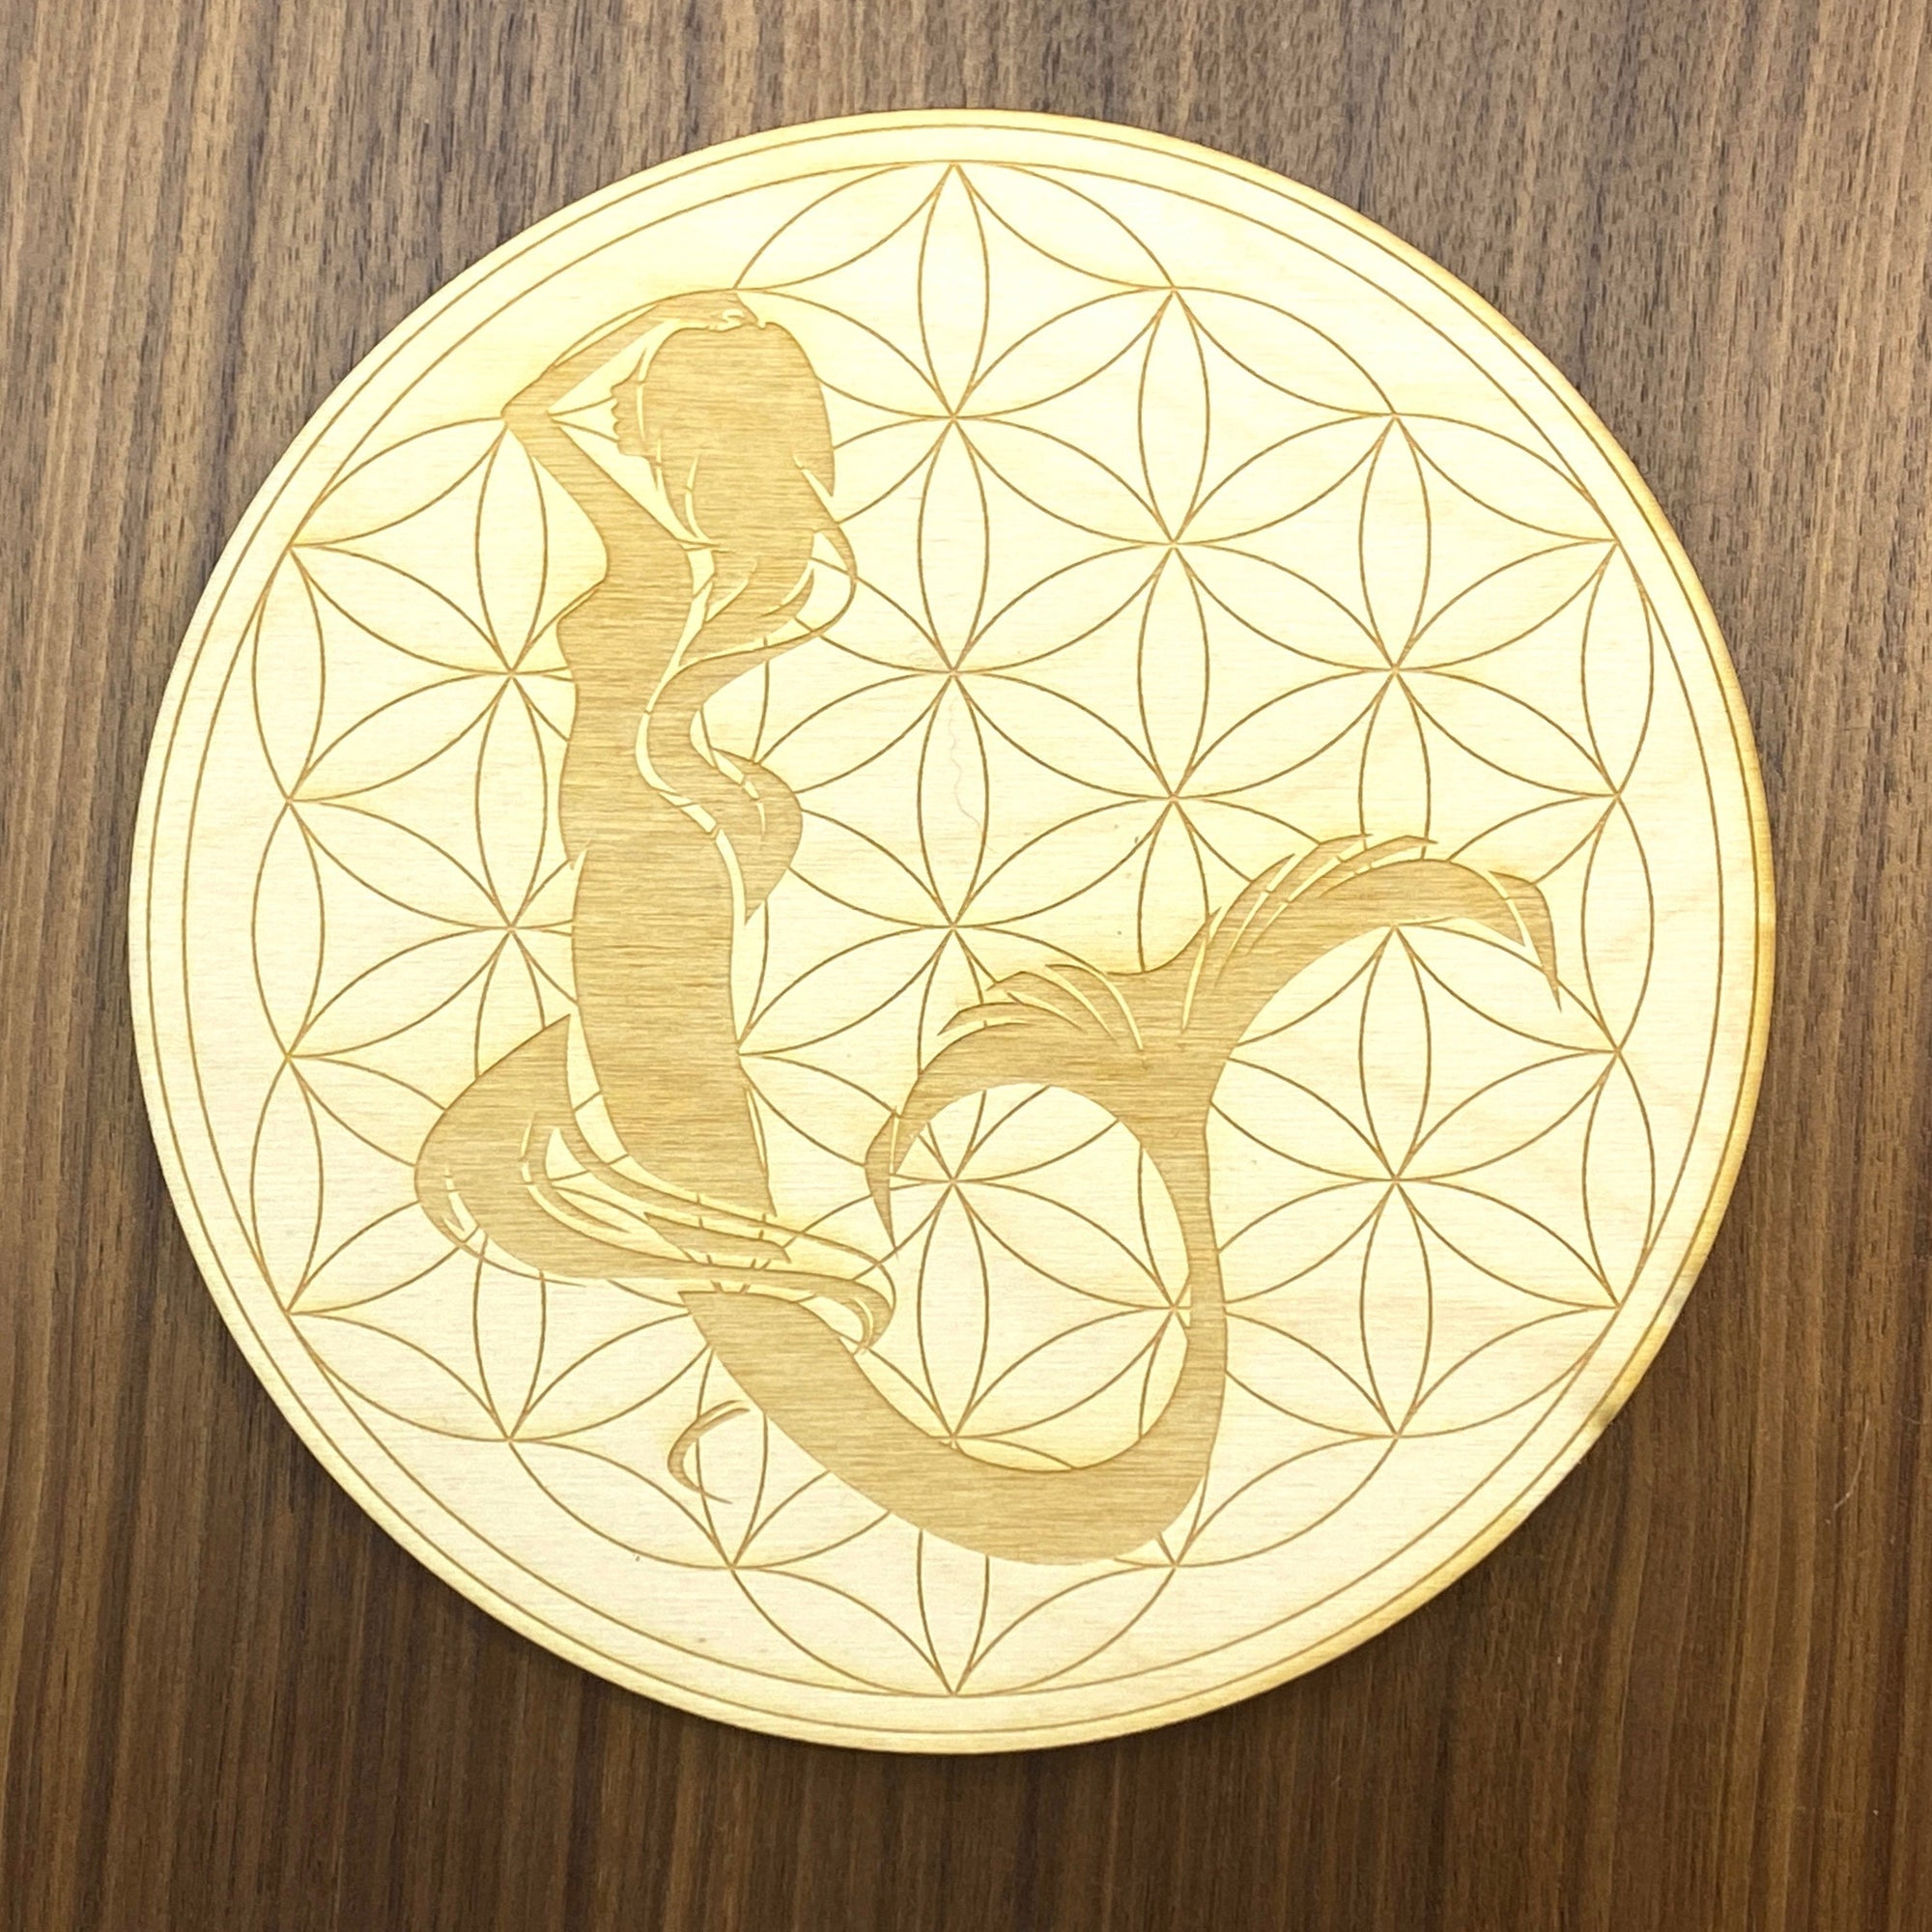 Mermaid Flower of Life Crystal Grid